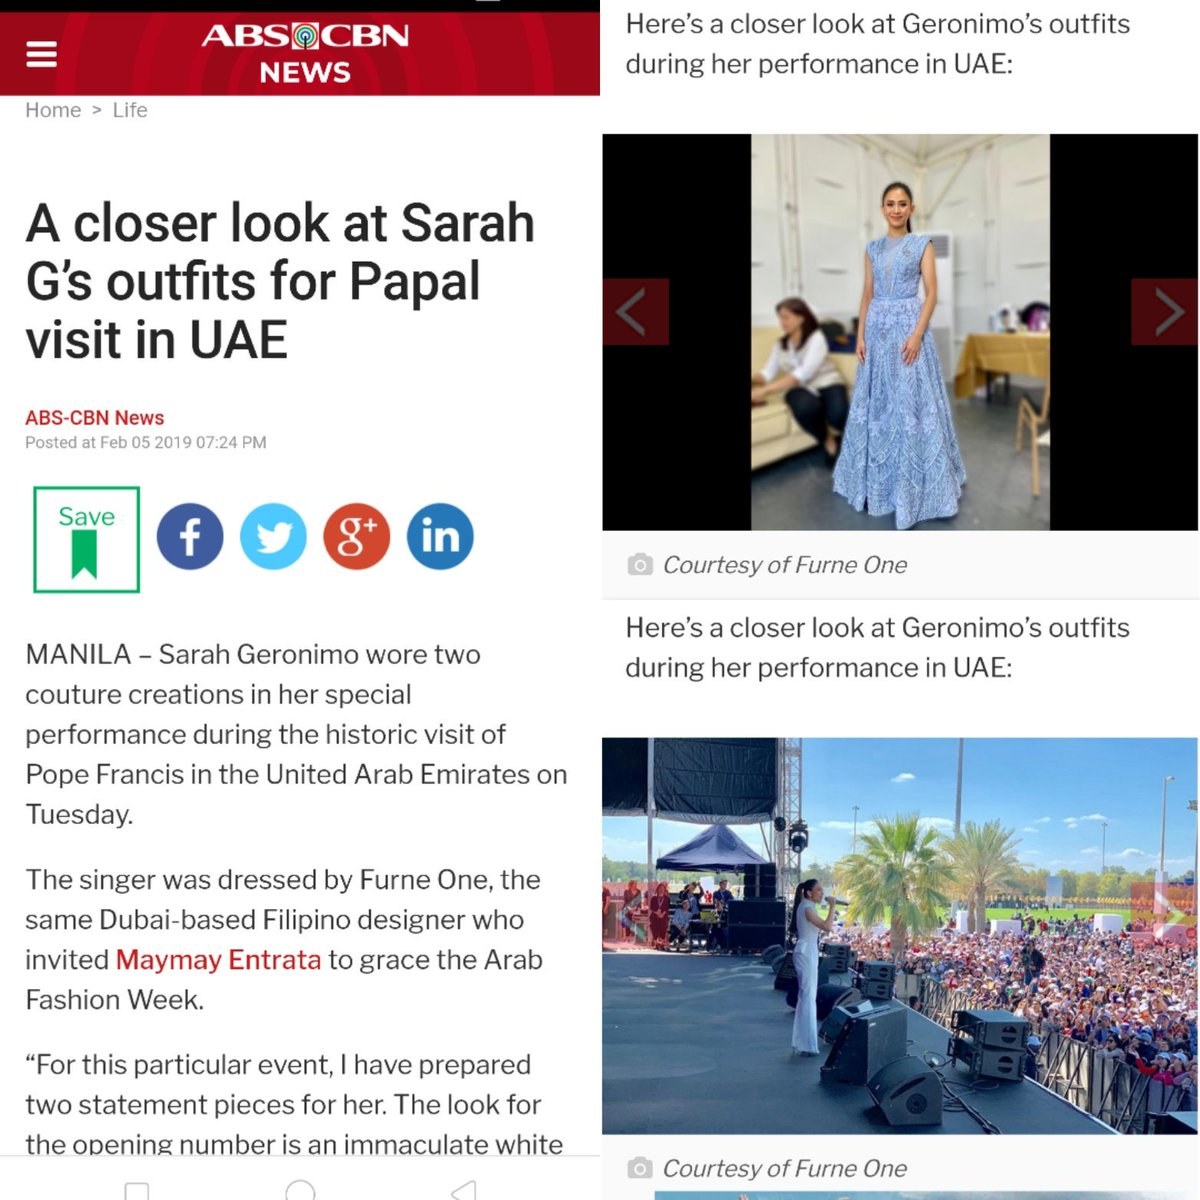 Thank you @ABSCBN ! @JustSarahG in @furneamato1 arranged by @YugenPR  So proud of #SarahGAtThePapalVisitUAE singing inspirational songs after the Holy Mass #PopeFrancisInUAE   https:// news.abs-cbn.com/life/02/05/19/ a-closer-look-at-sarah-gs-outfits-for-papal-visit-in-uae  … <br>http://pic.twitter.com/5TxLe4uipD